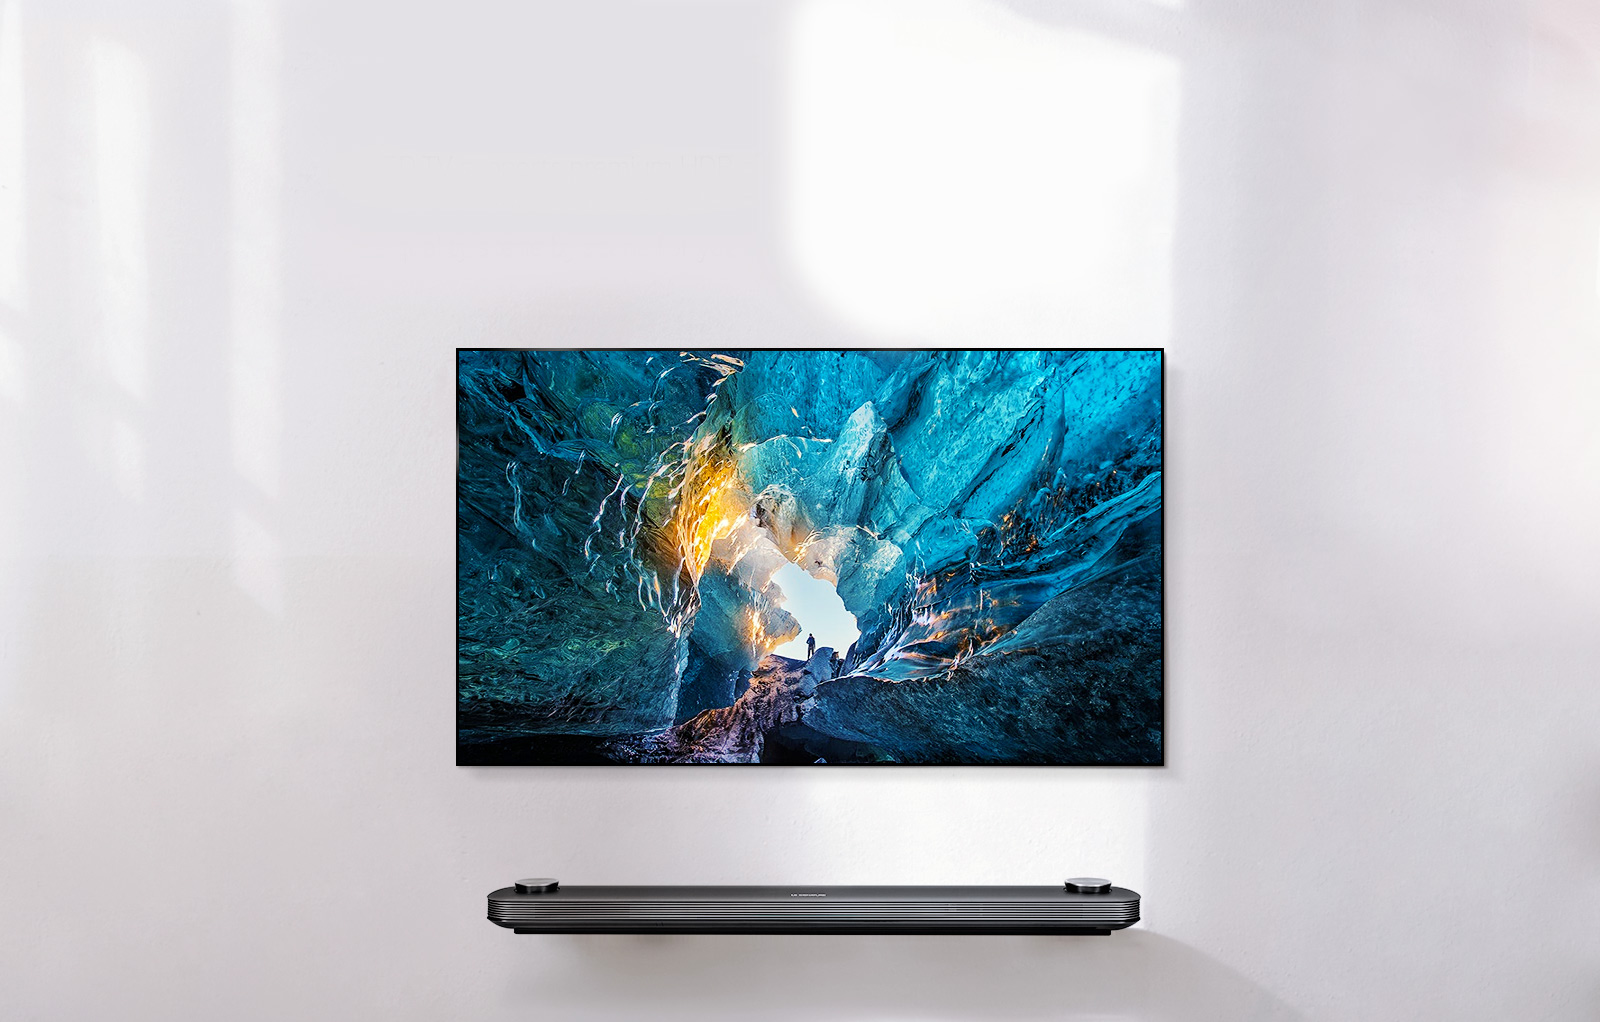 OLED Ultimate HDR 4K Picture